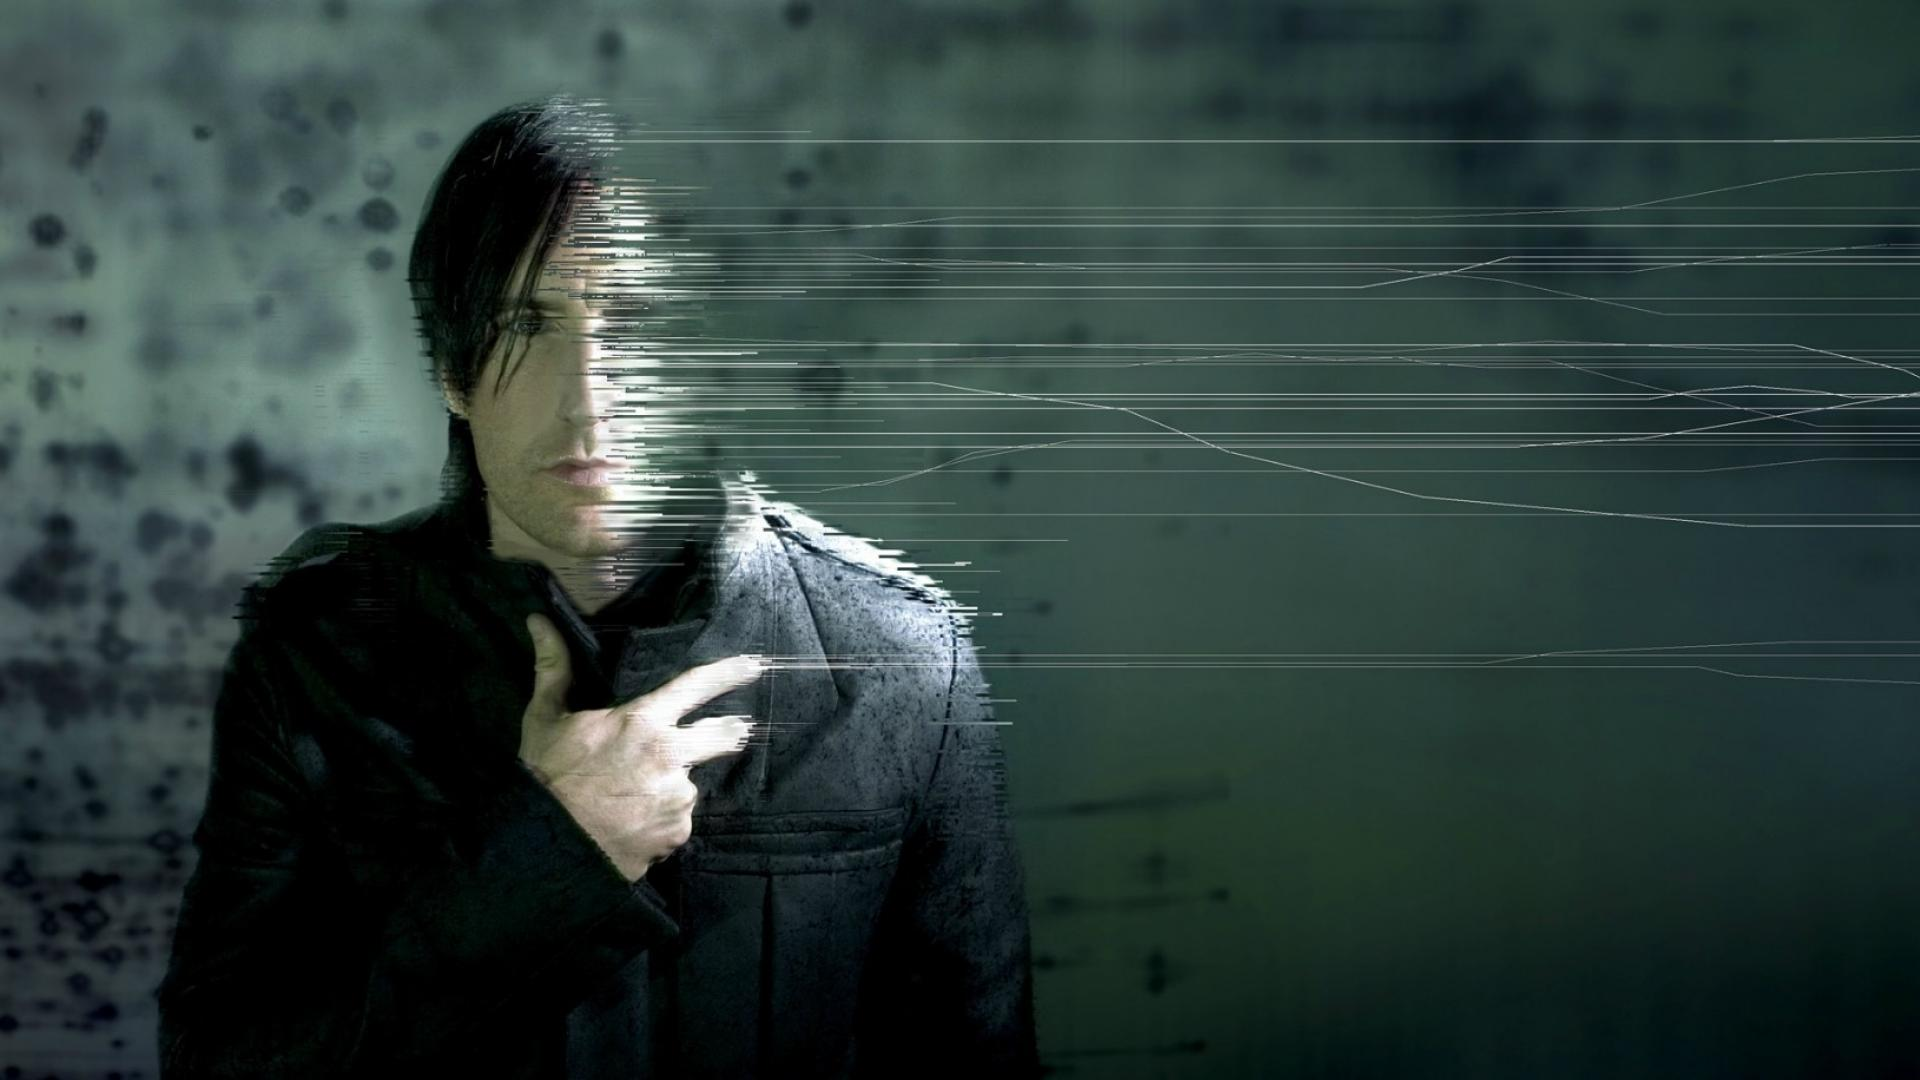 76+ Trent Reznor Wallpaper on WallpaperSafari